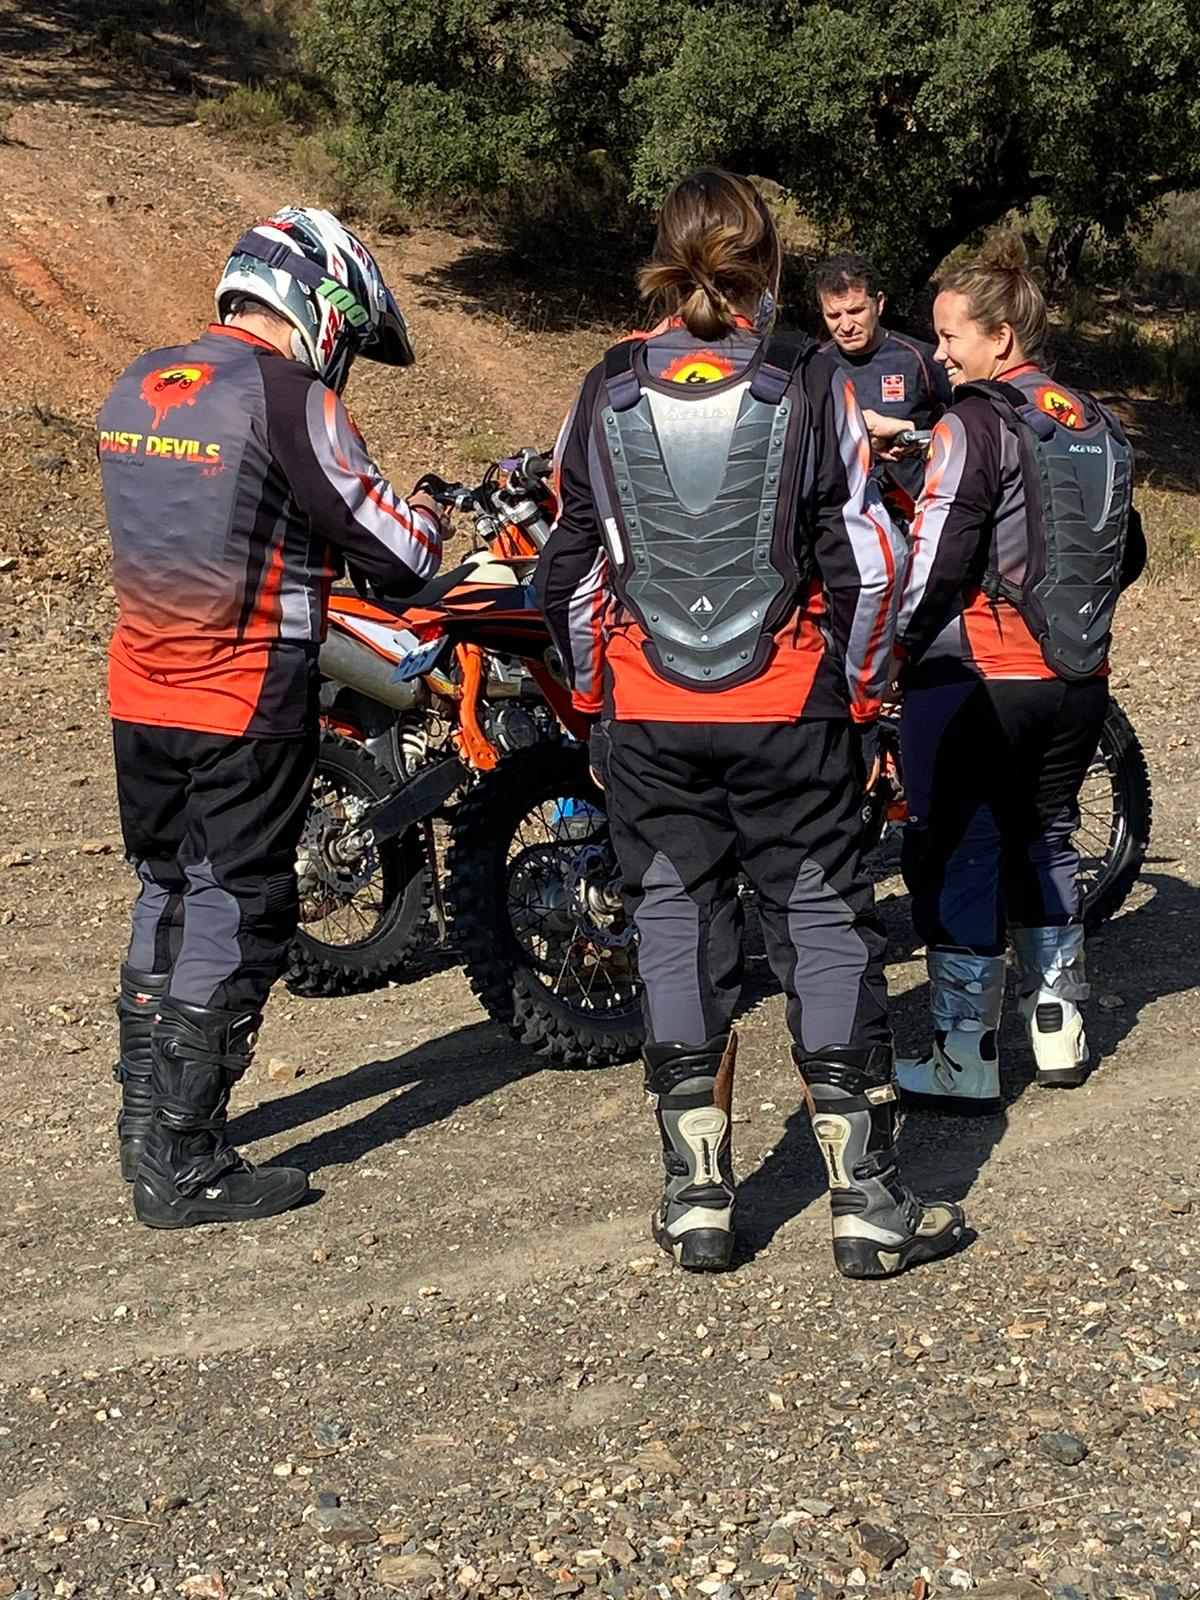 Enduro training being given to a small group of people